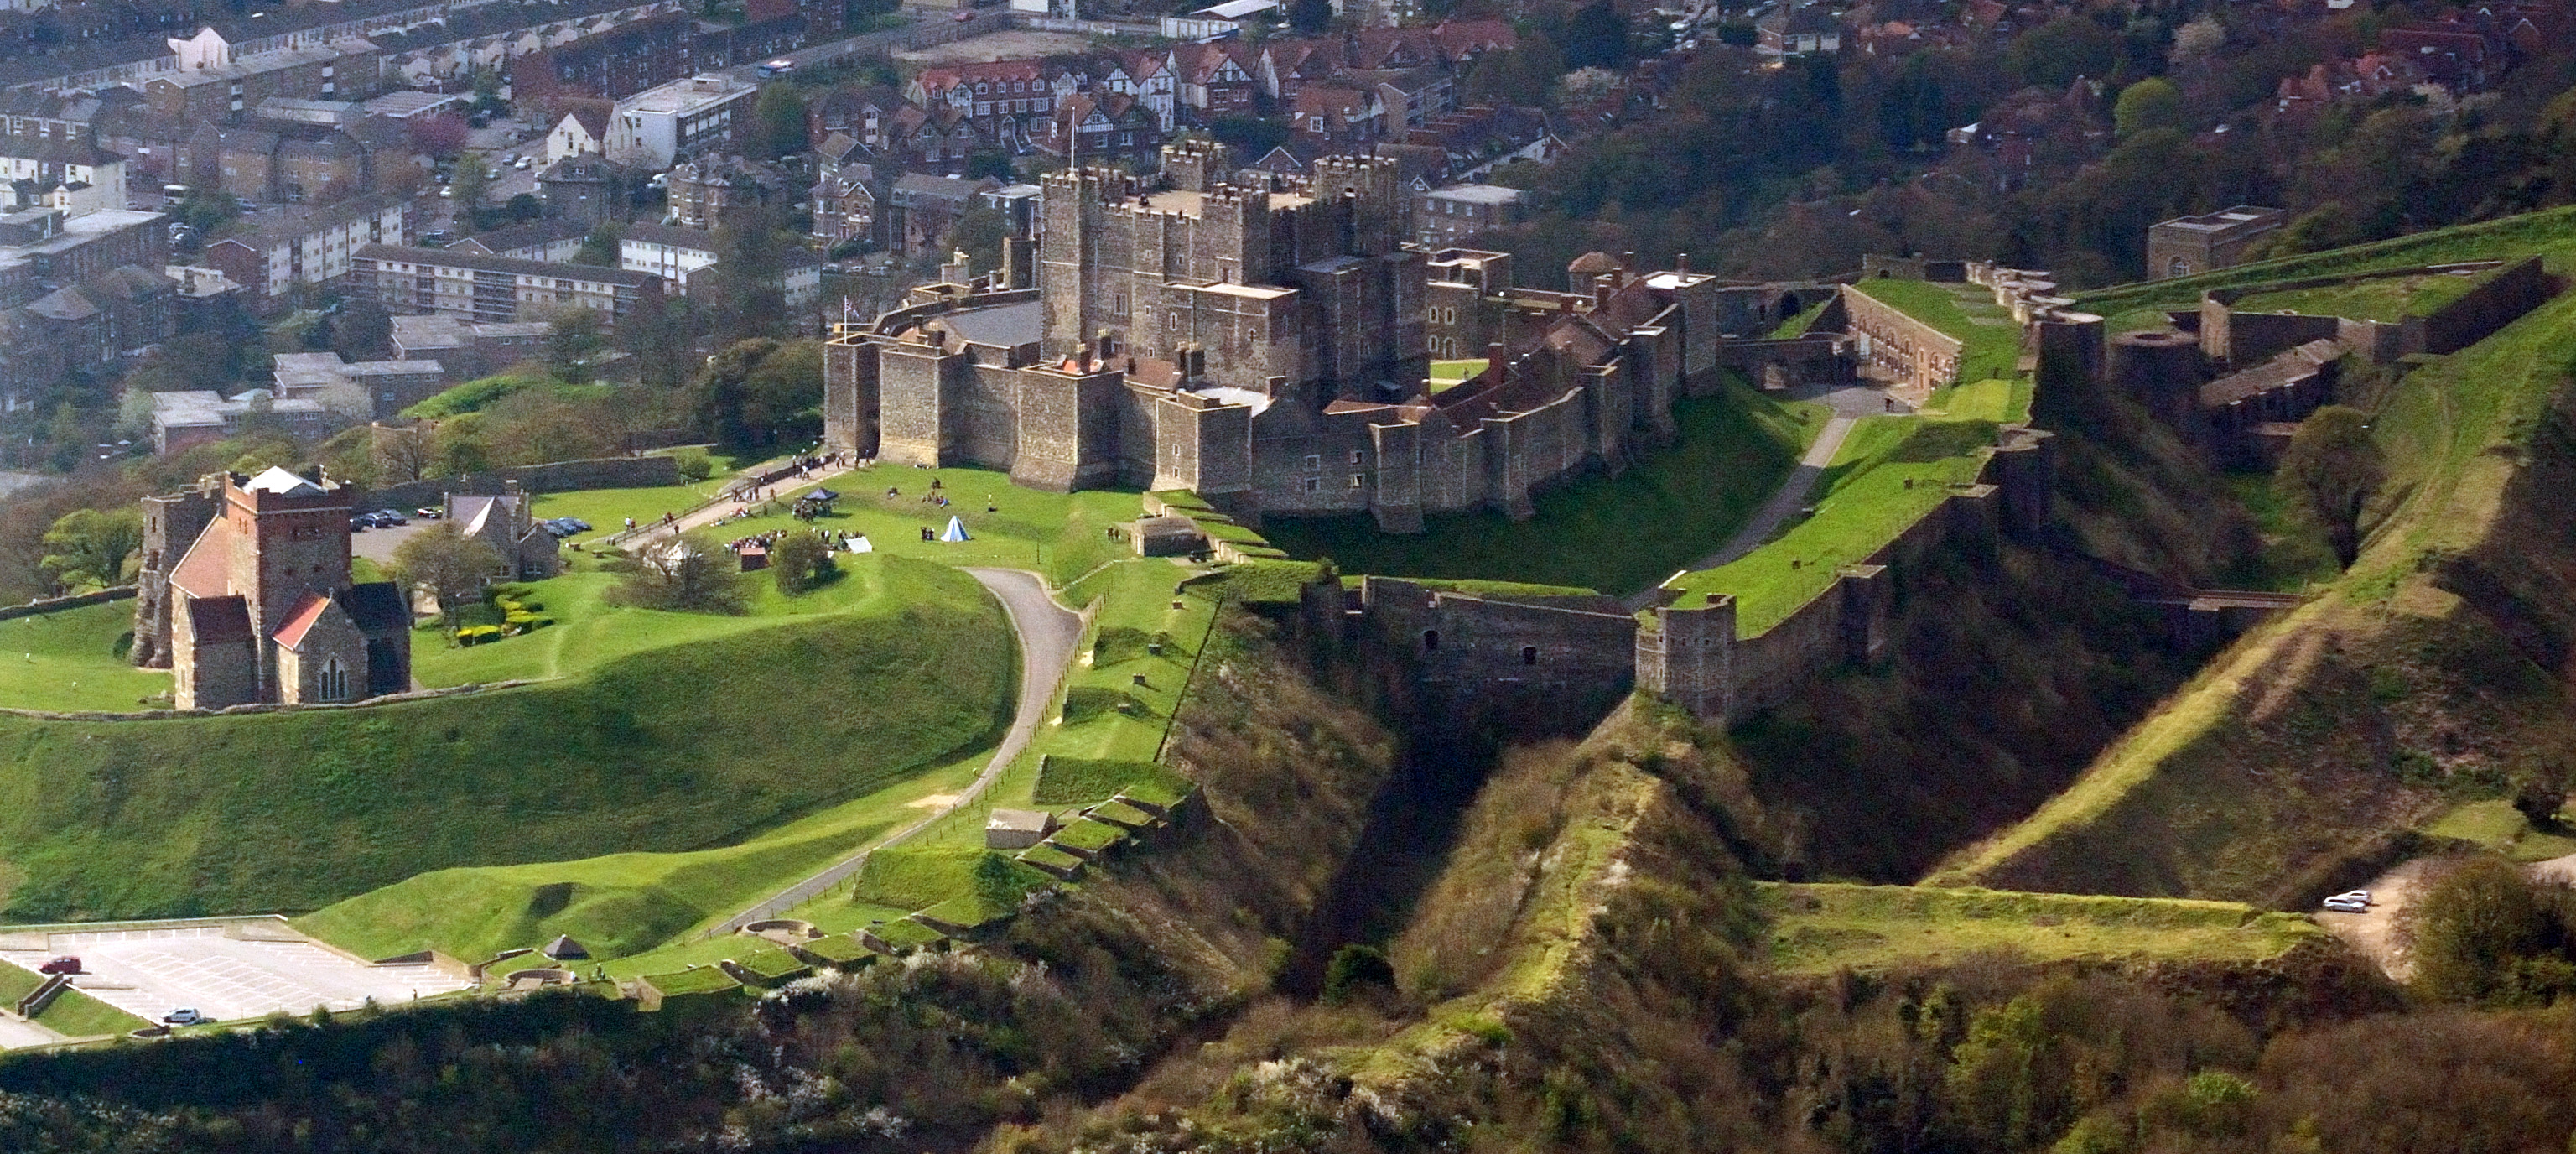 File:Dover Castle aerial view.jpg - Wikimedia Commons